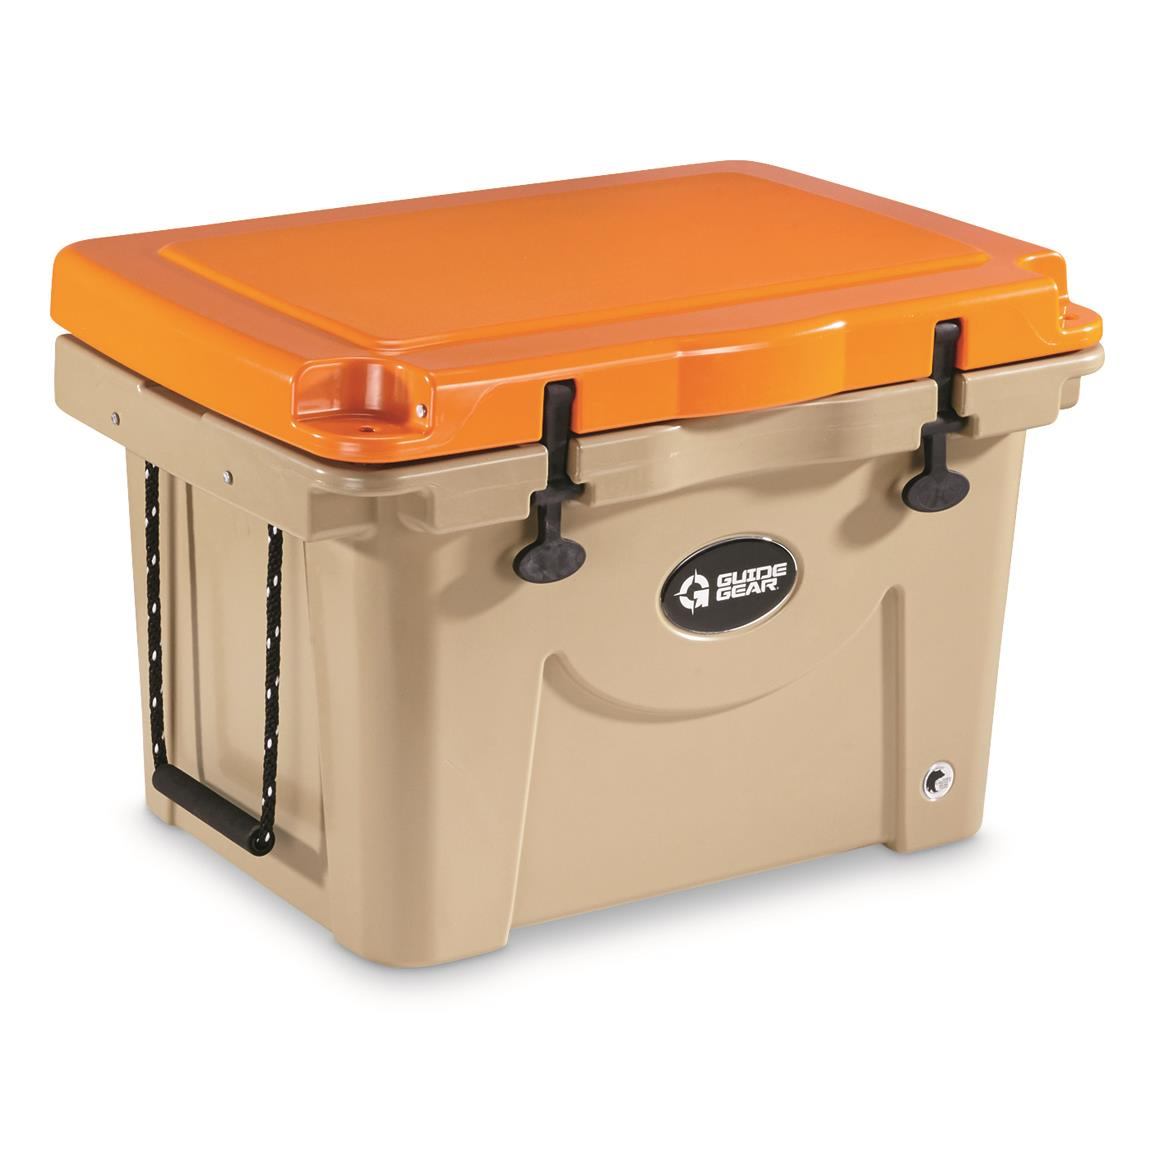 Guide Guide 60 Quart Cooler, Orange/Tan